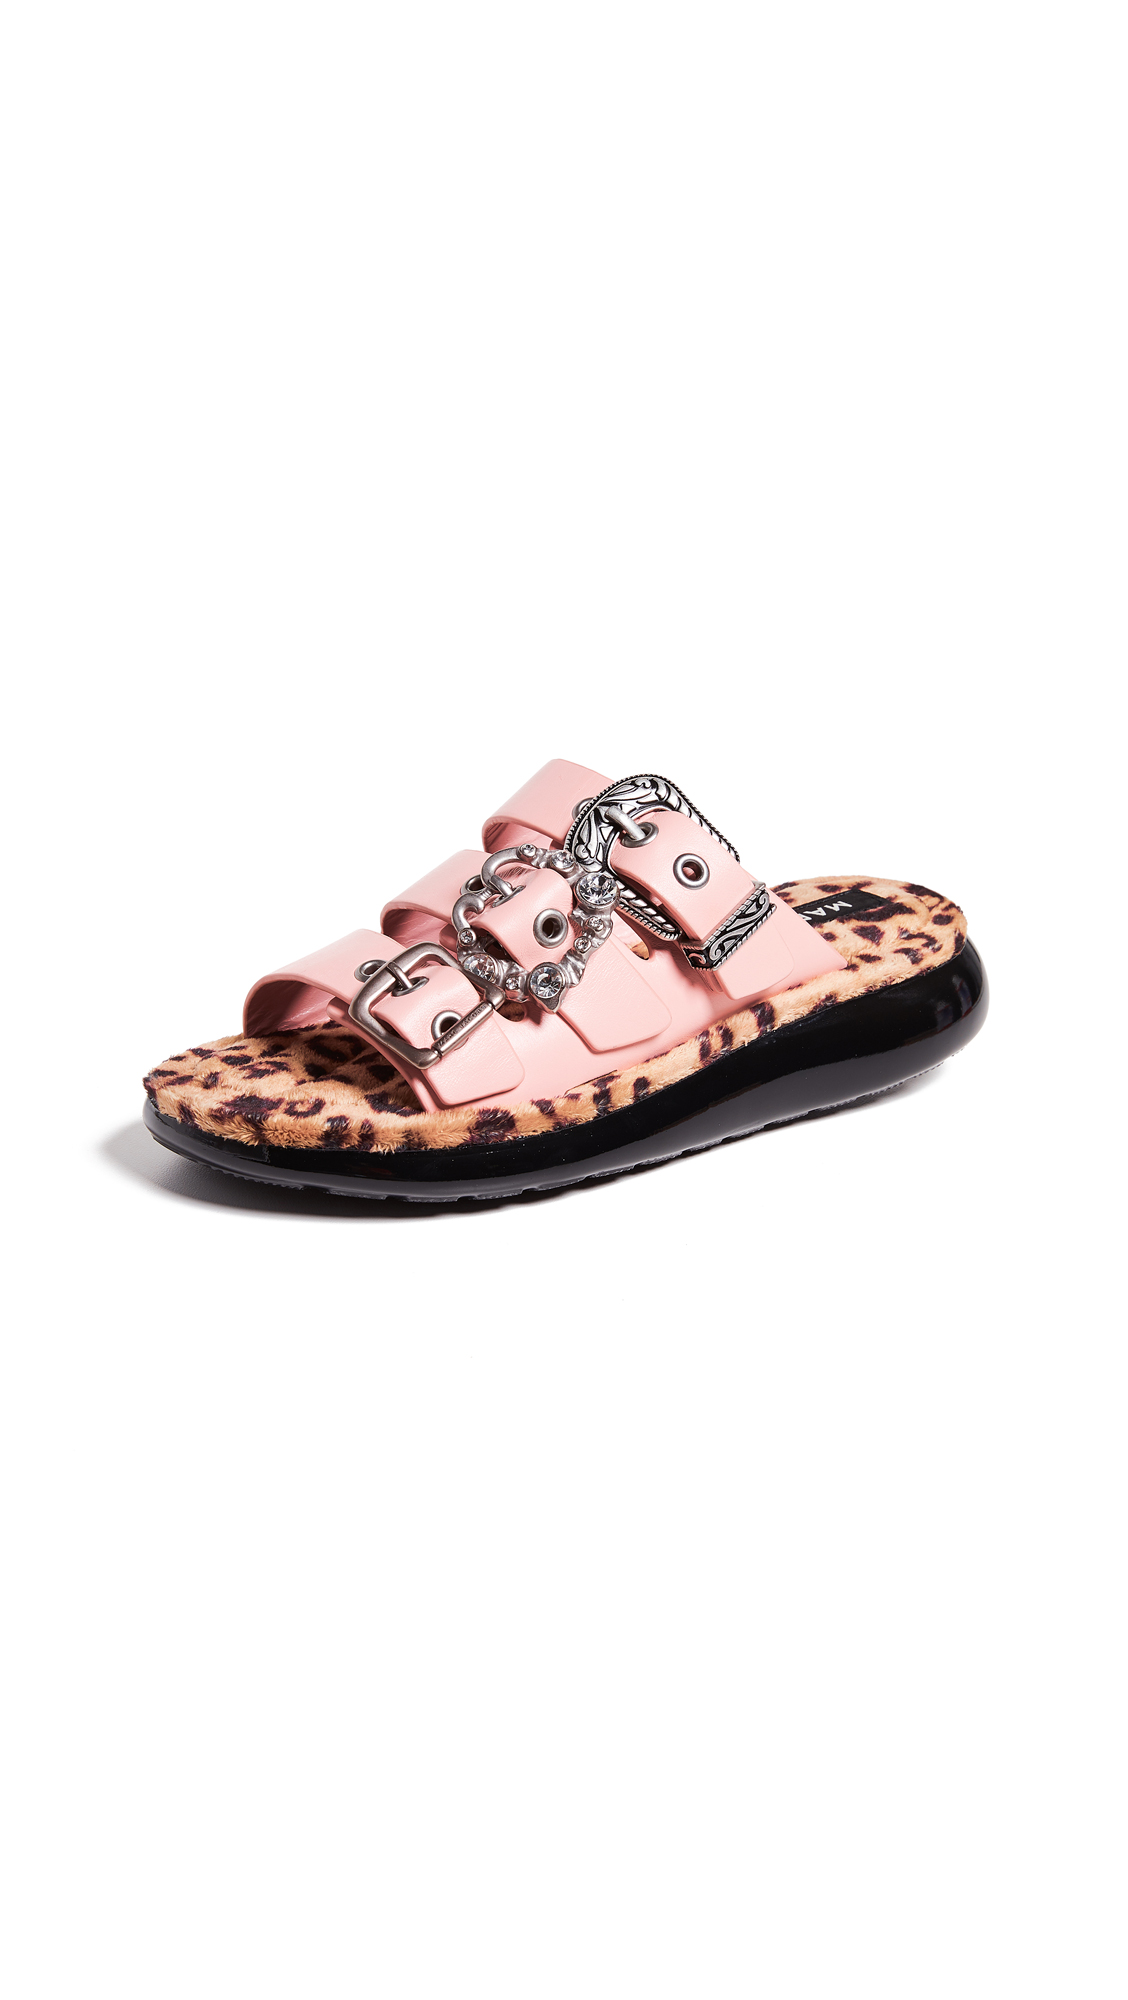 Marc Jacobs Emerson Buckle Sport Sandals - Light Pink Multi